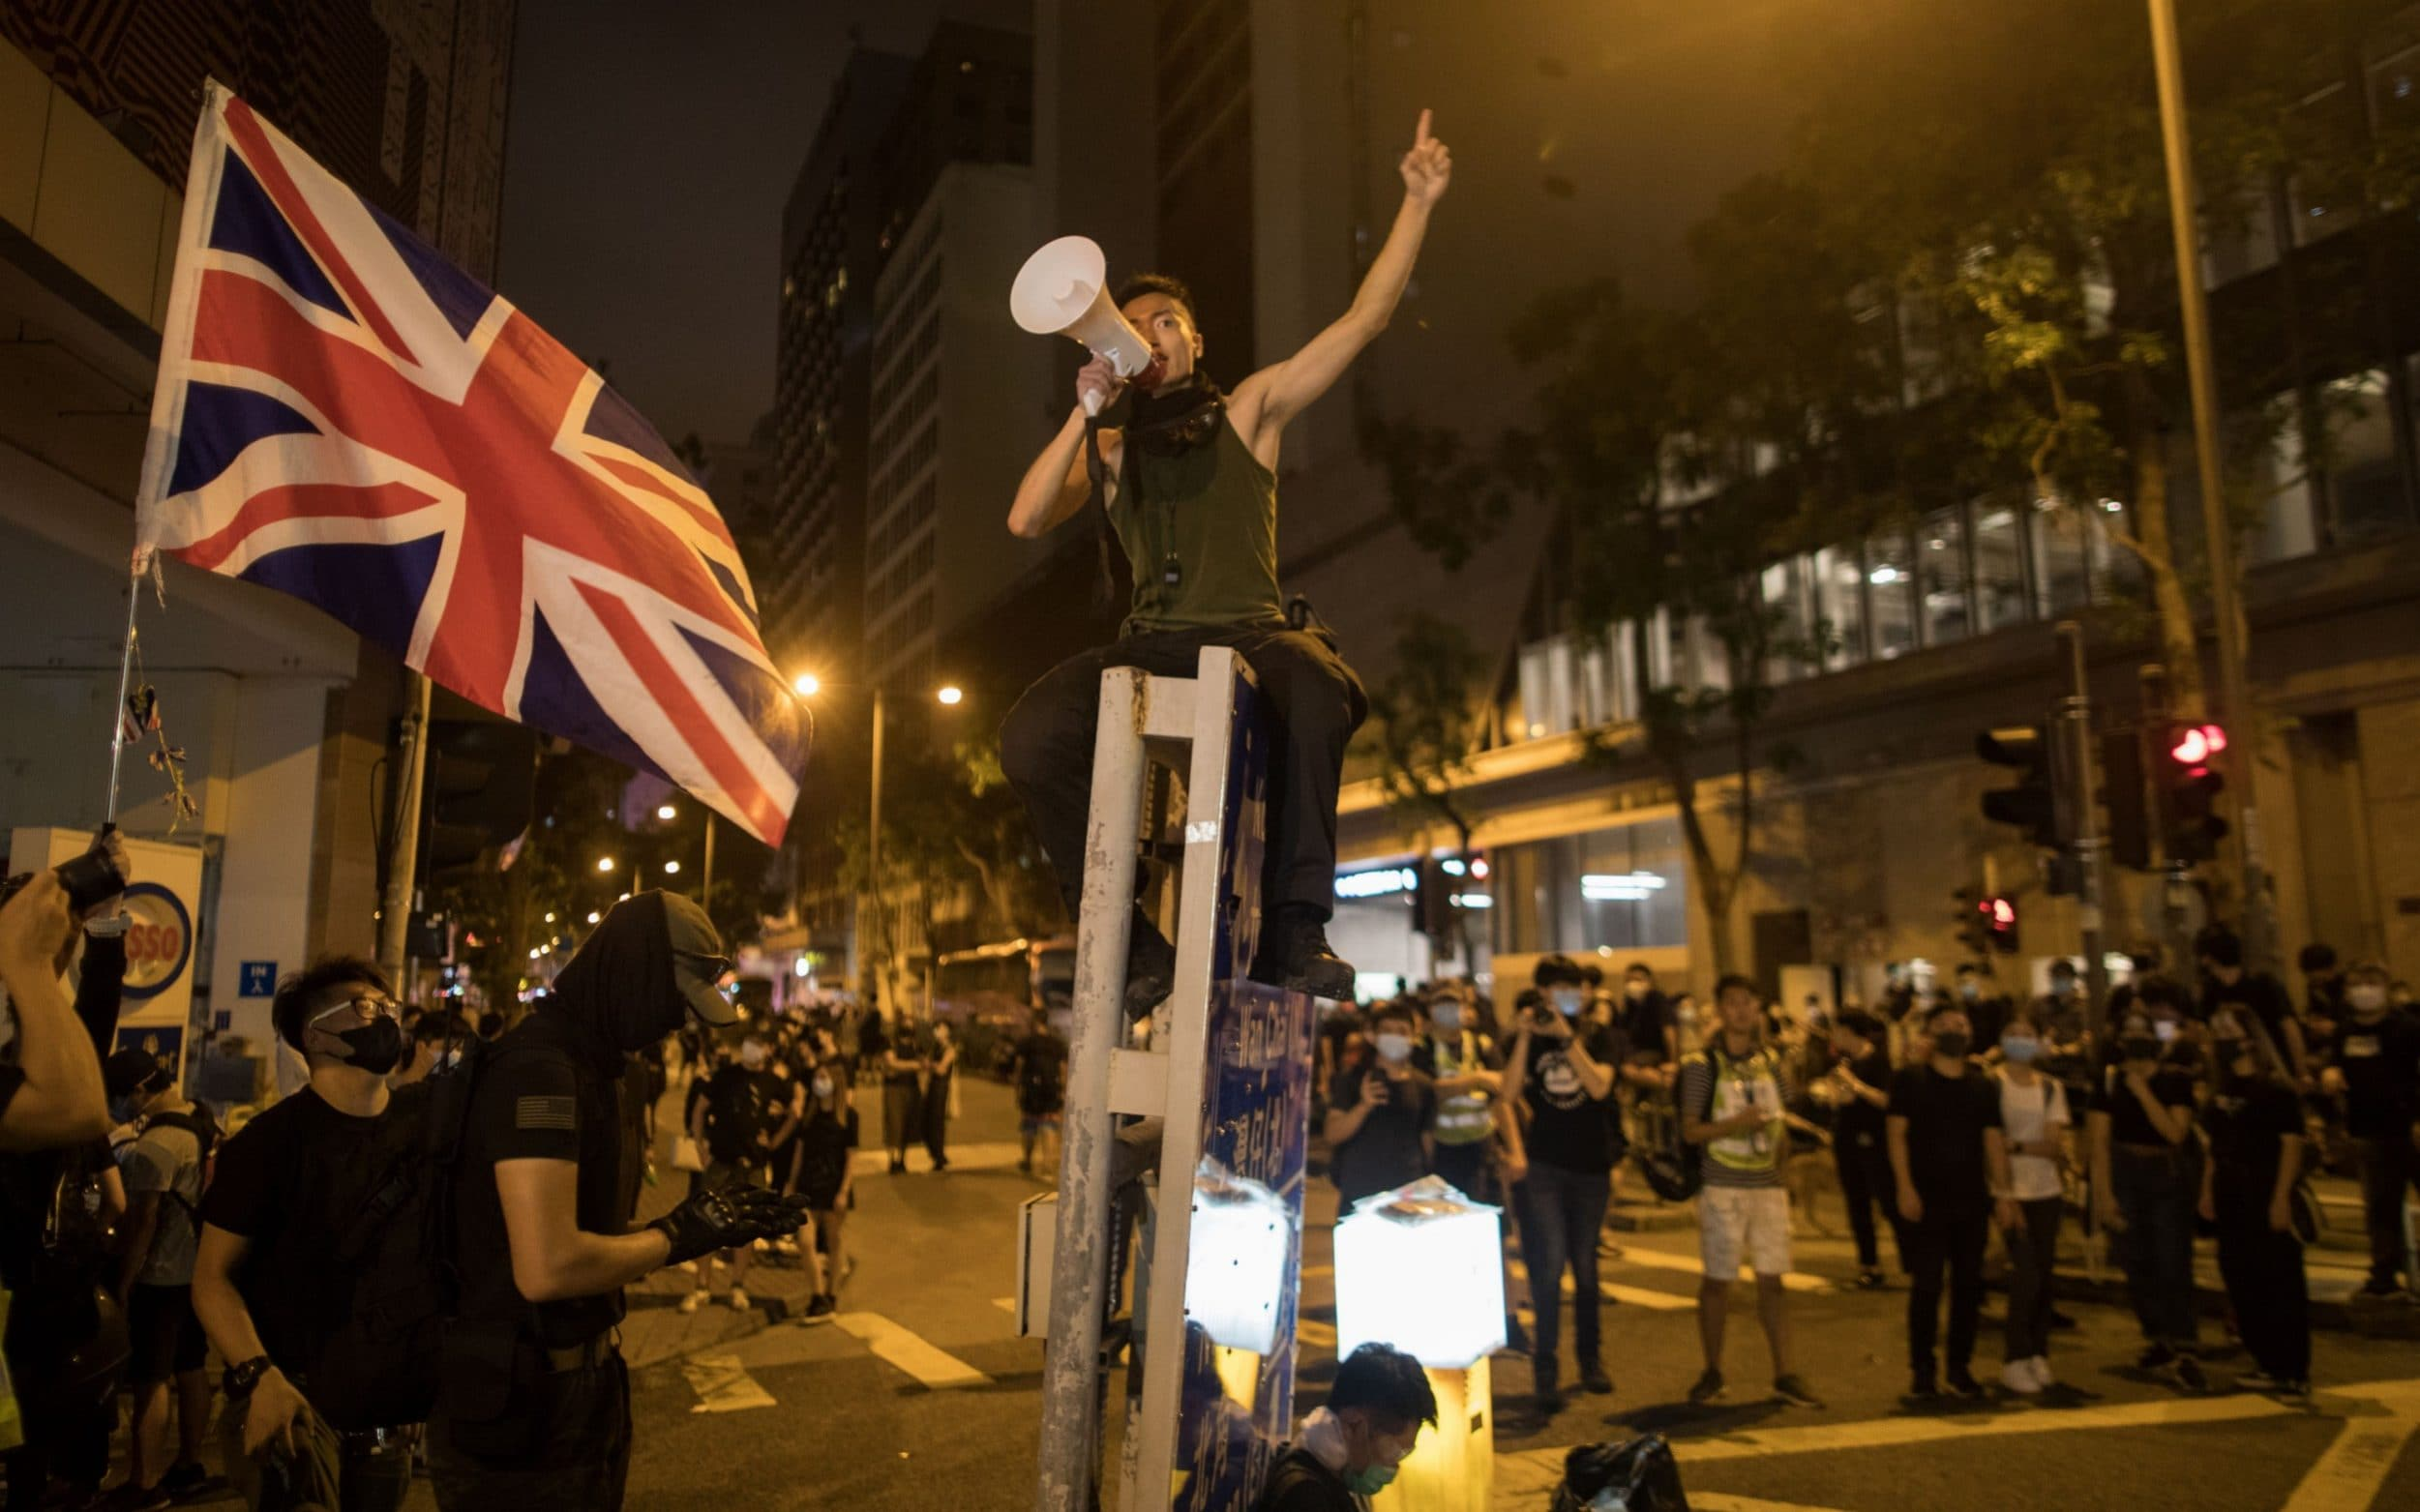 Britain warns China to abide by one-country-two-systems rule ahead of anniversary protests